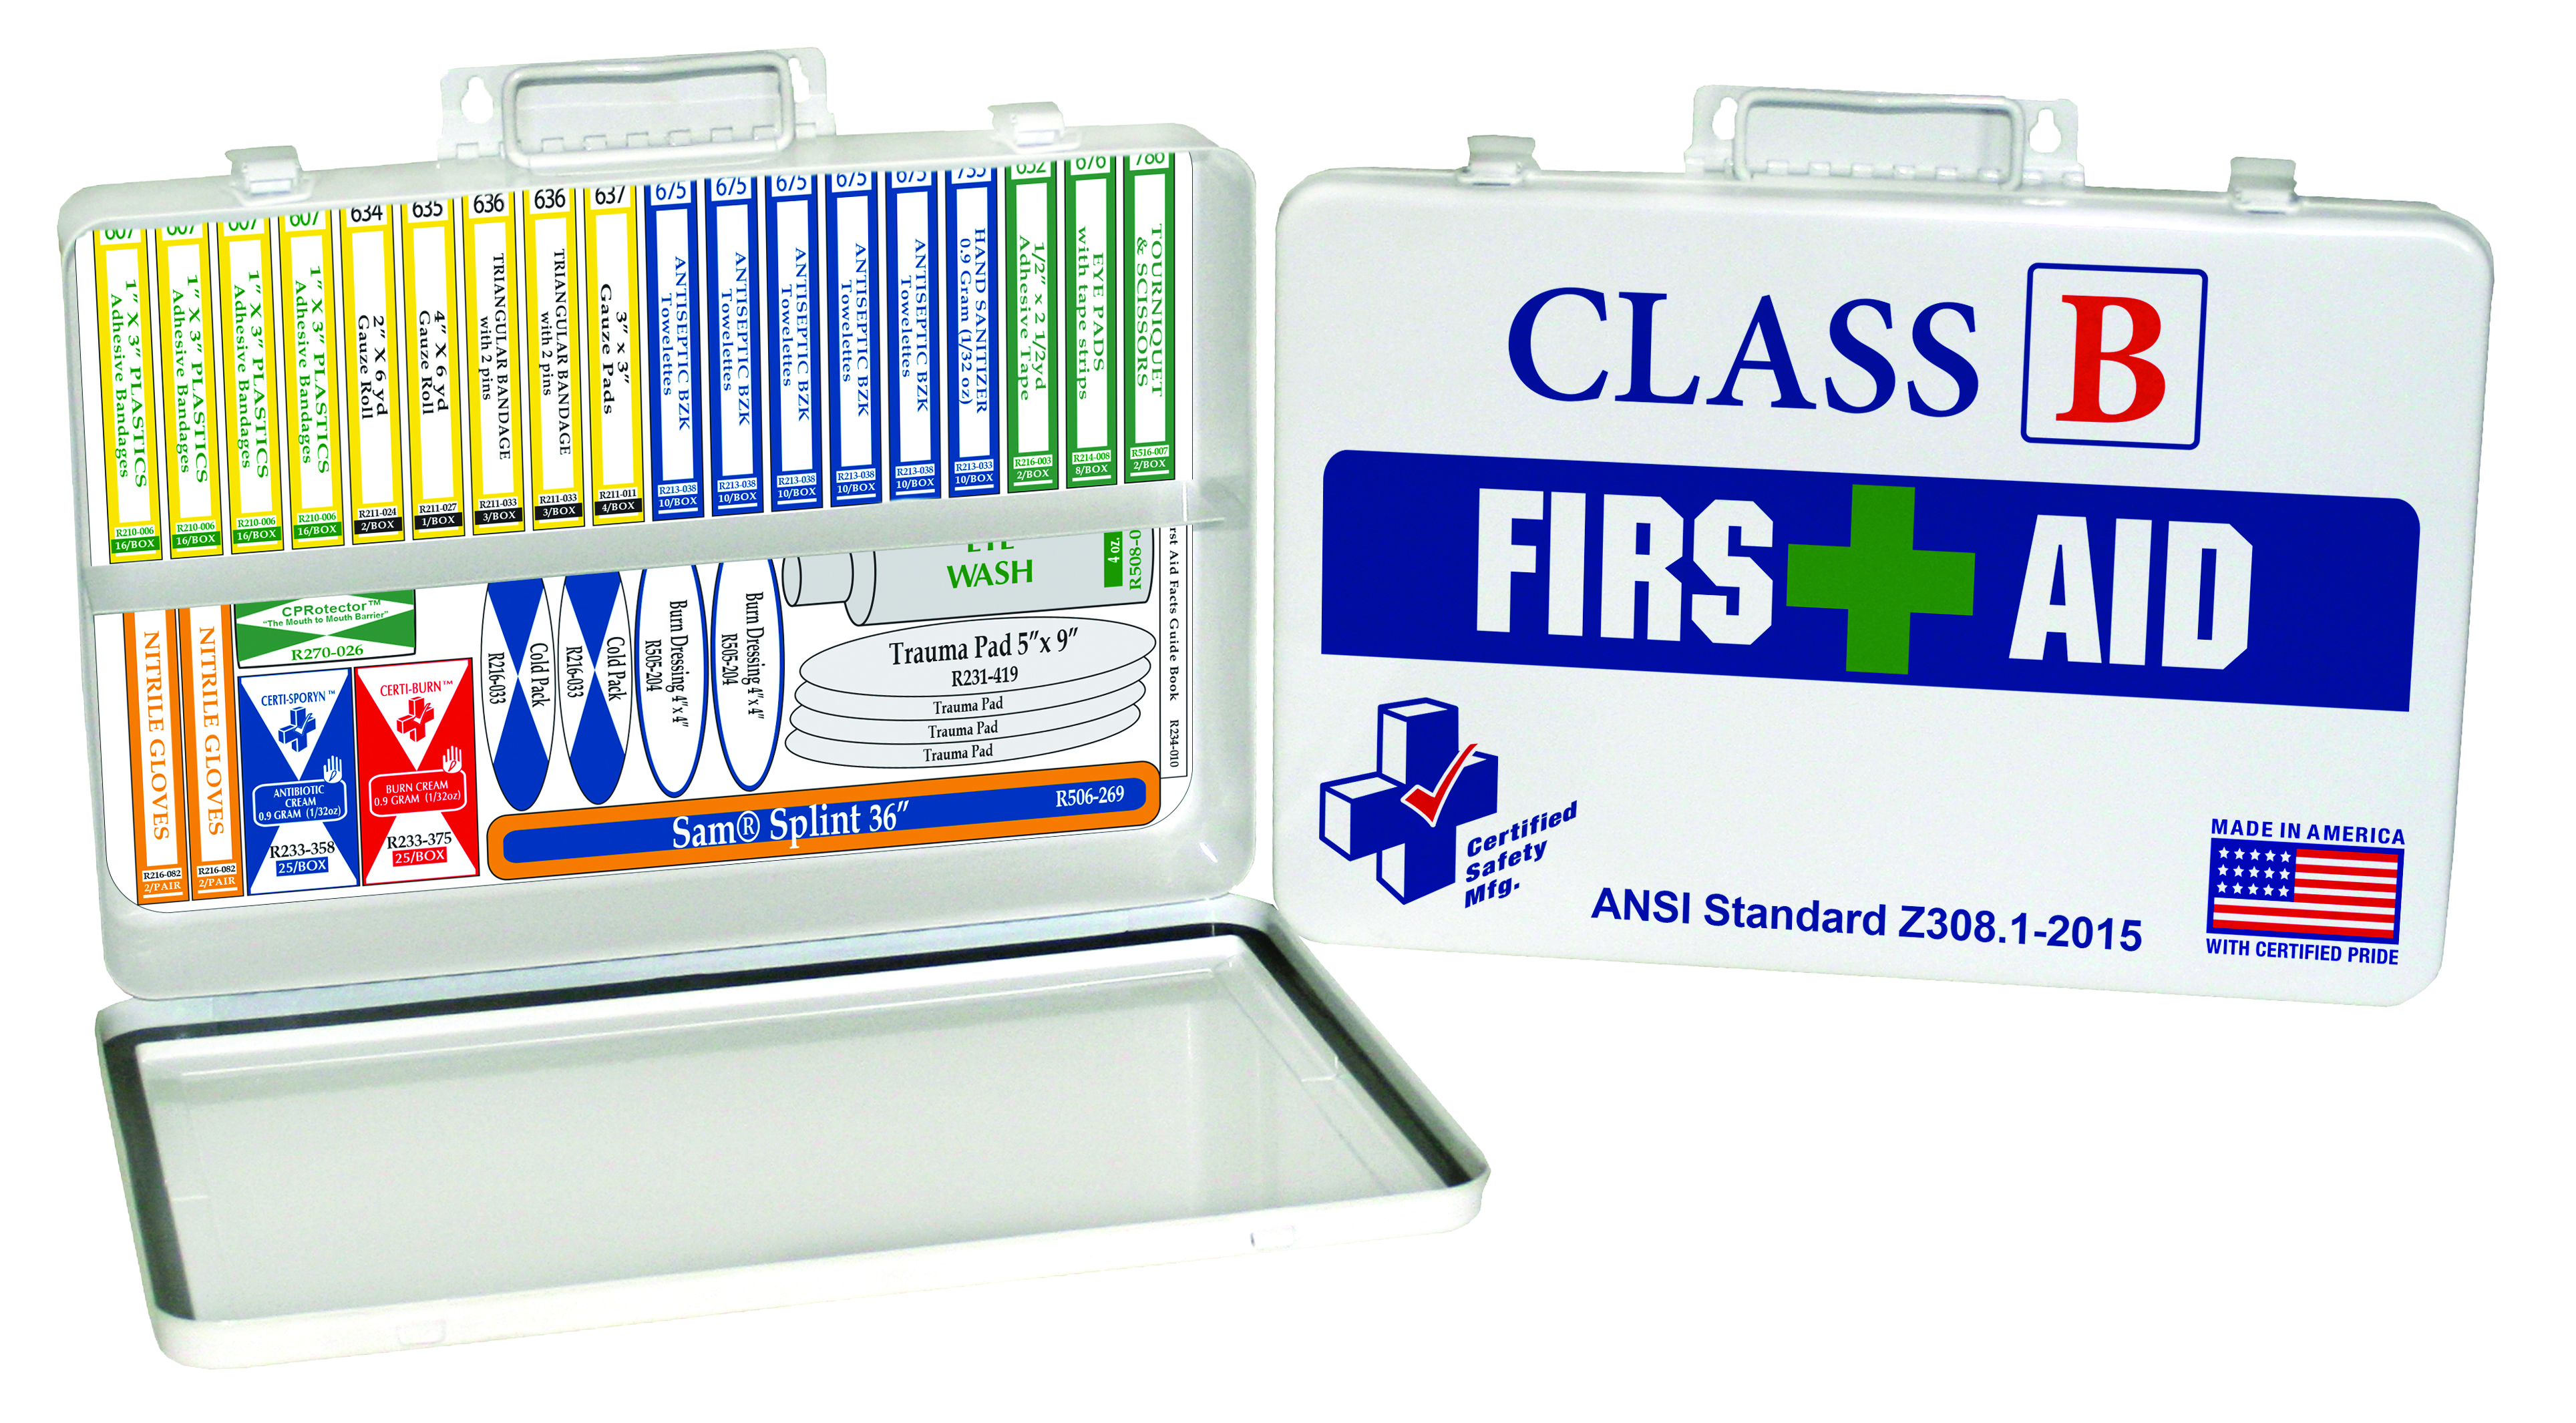 K615-019                       - Class B First Aid Kits - Metal White-Class B First Aid Kit-Designed for High Risk work zones----UOM: 1/EA